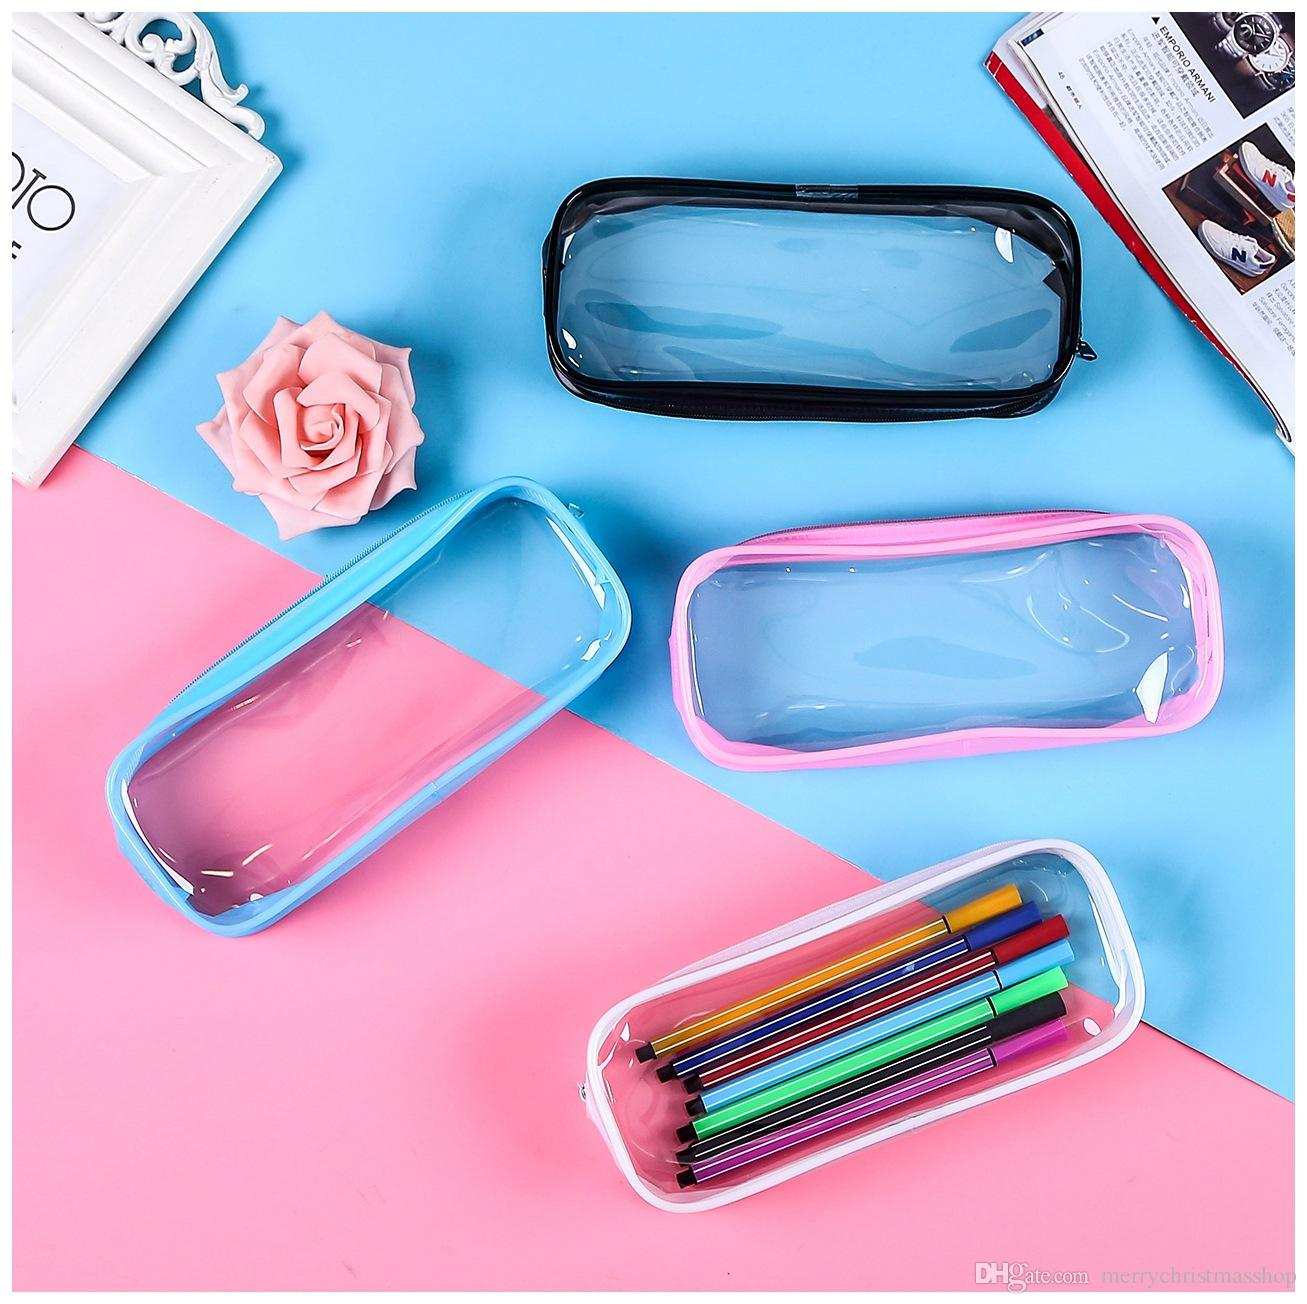 PVC Pen Bags Transparent Clear Case Cosmetic Bag Large Capacity Bag with Zipper Stationery Cosmetic Storage Student Pen Pencil Bag